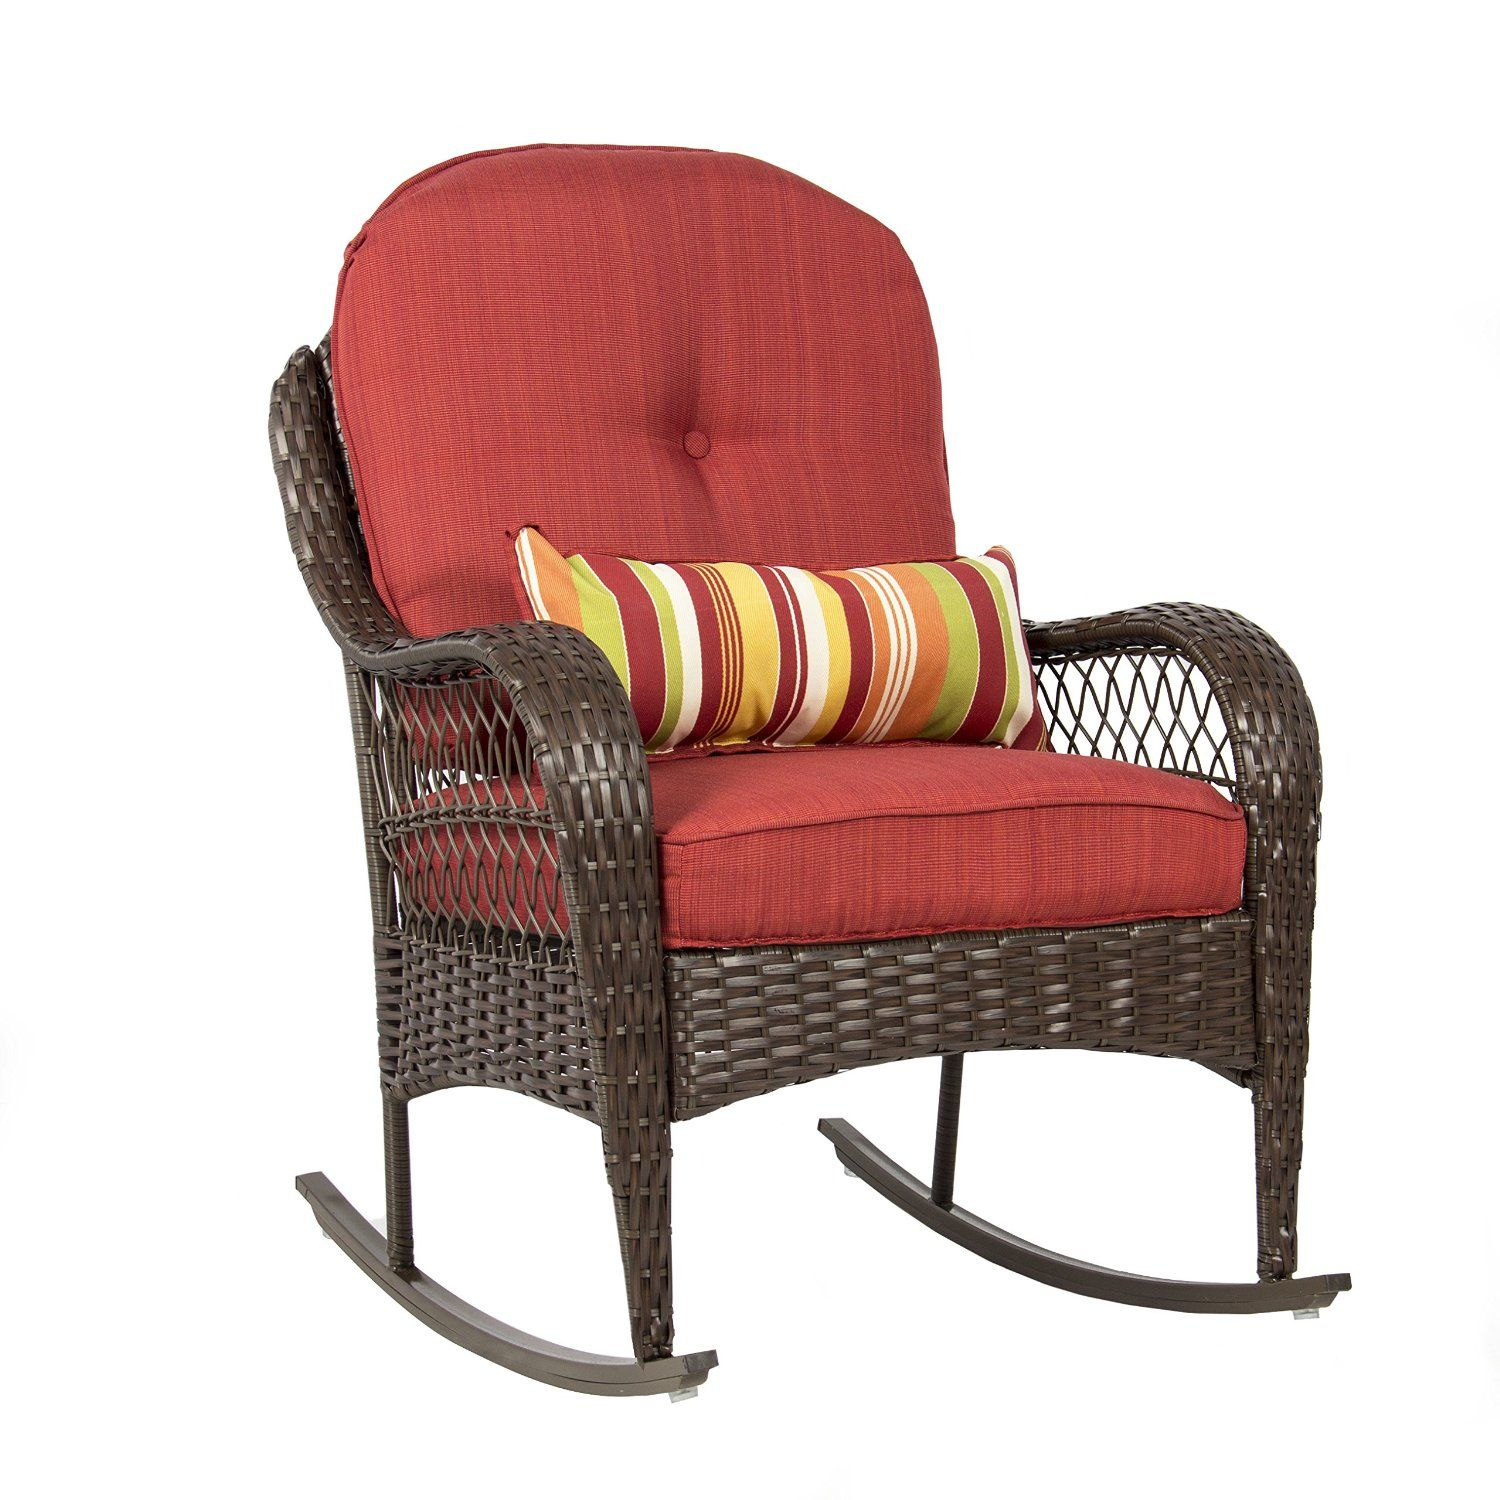 Best Choice Products Wicker Rocking Chair Outdoor Rocking Chairs Outdoor Wicker Rocking Chairs Rocking Chair Porch